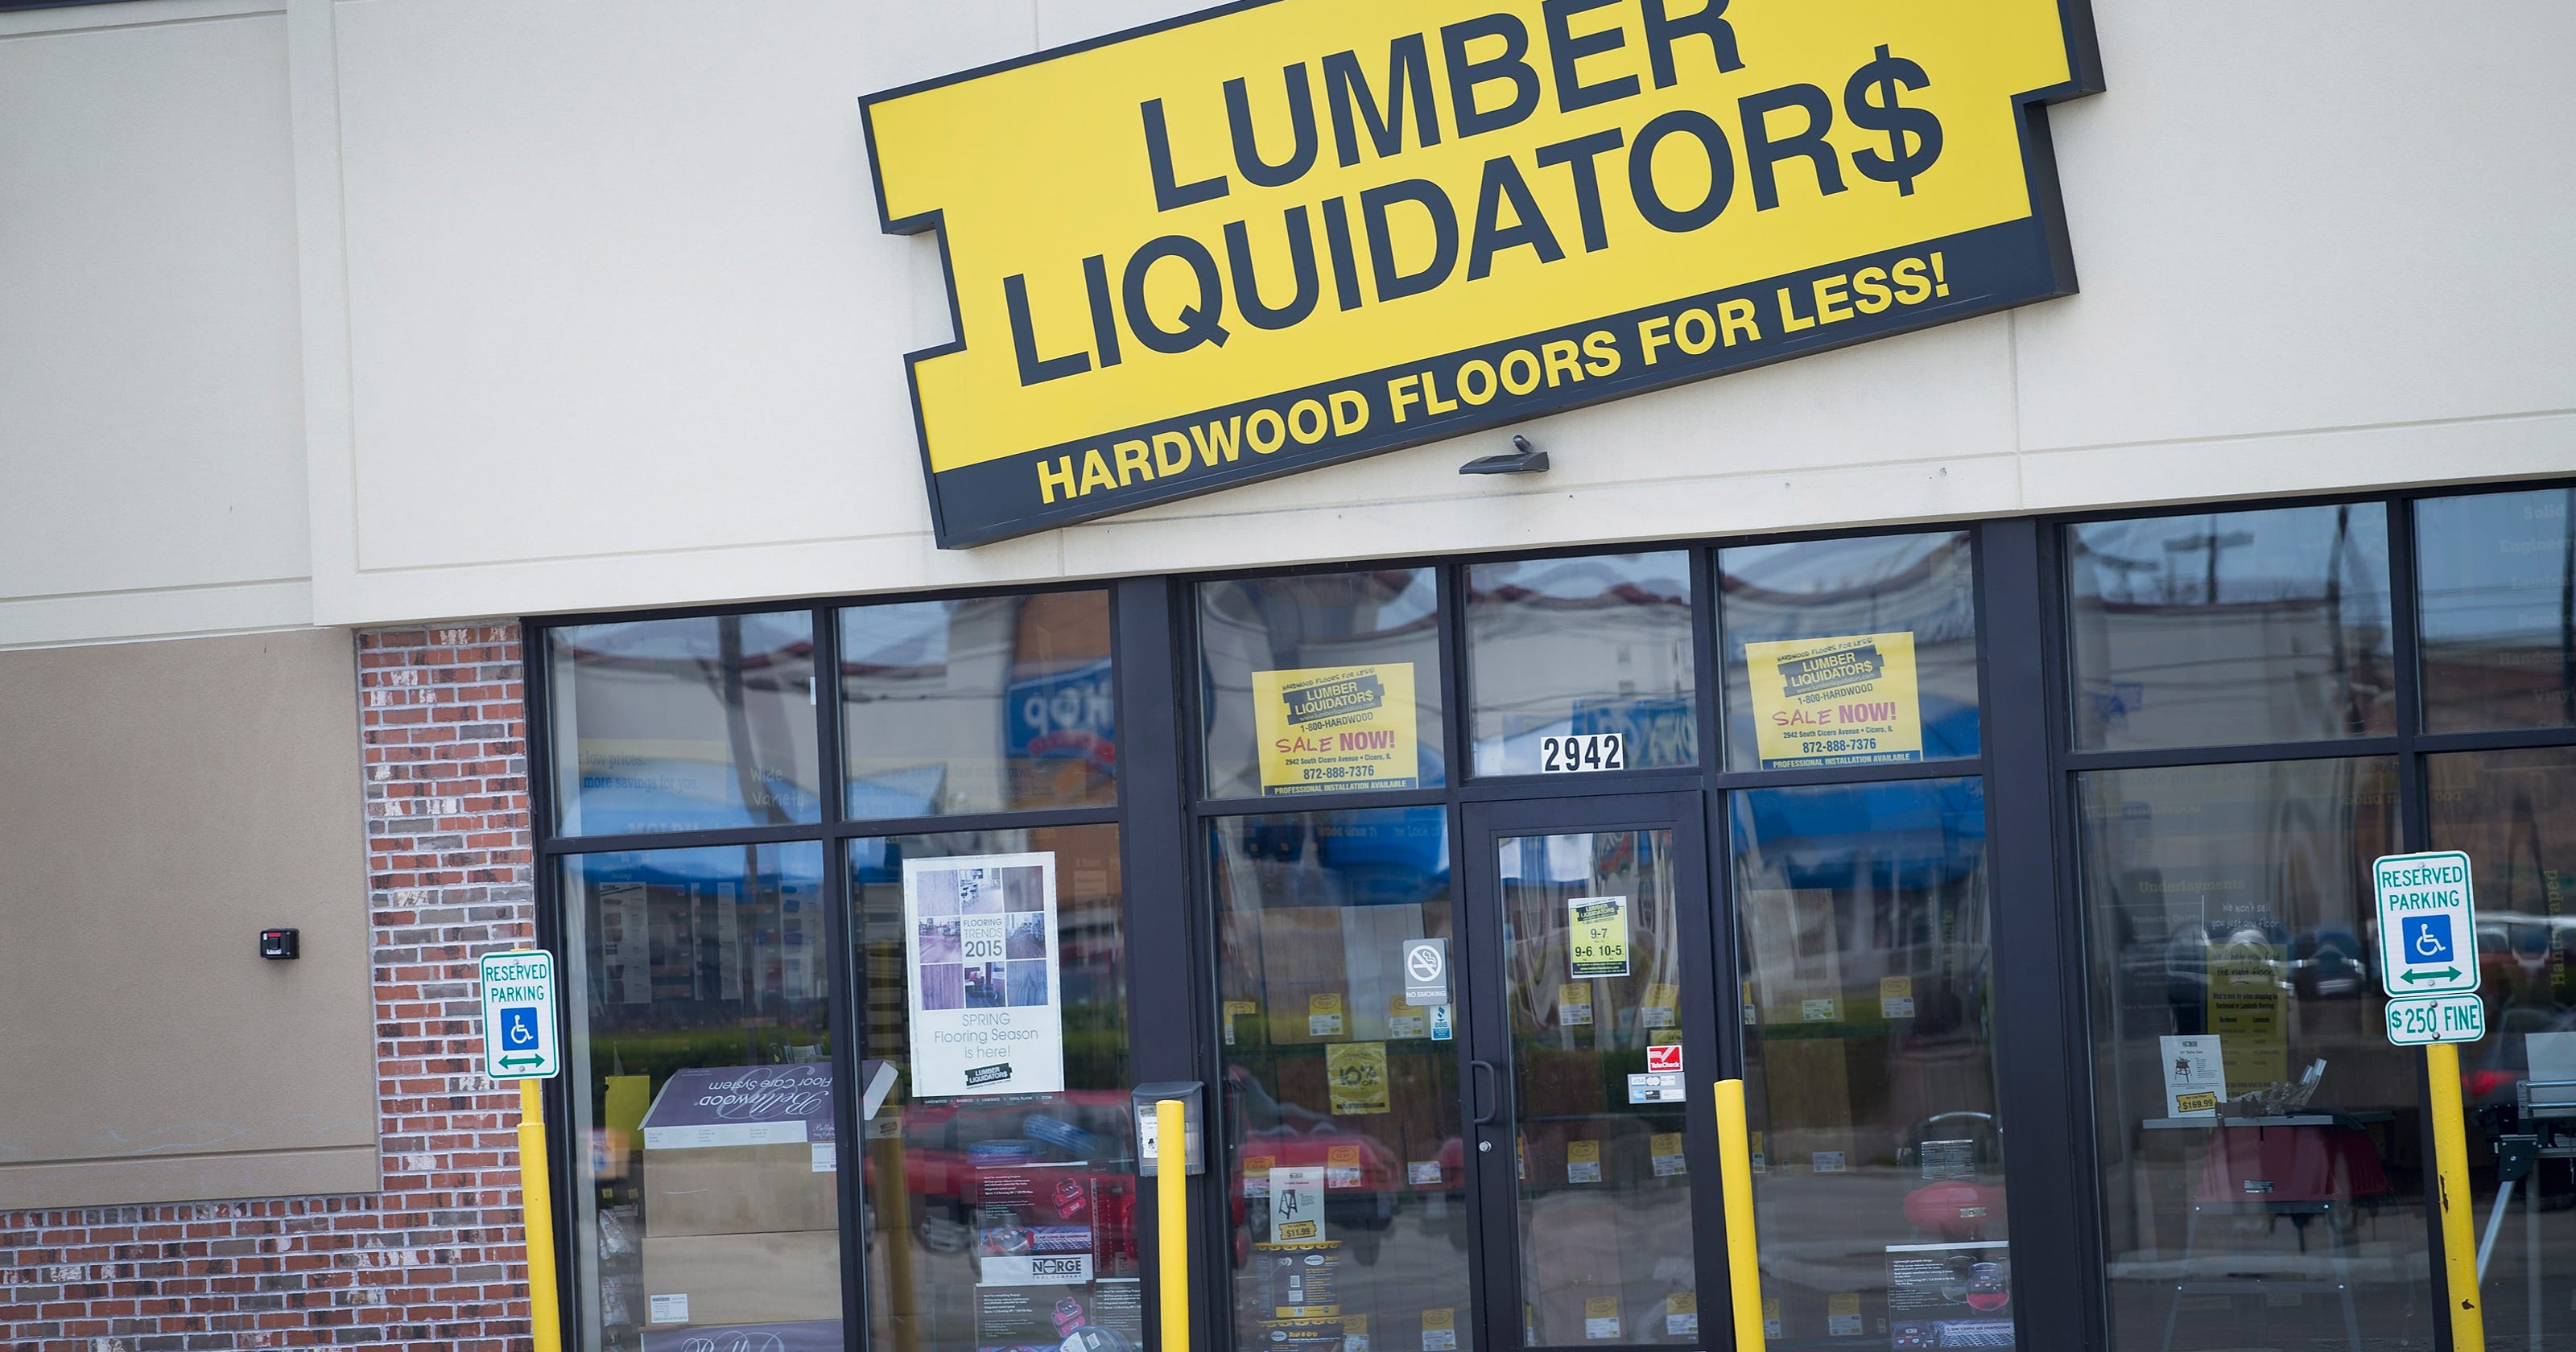 CDC: Elevated cancer risk in Lumber Liquidators laminate